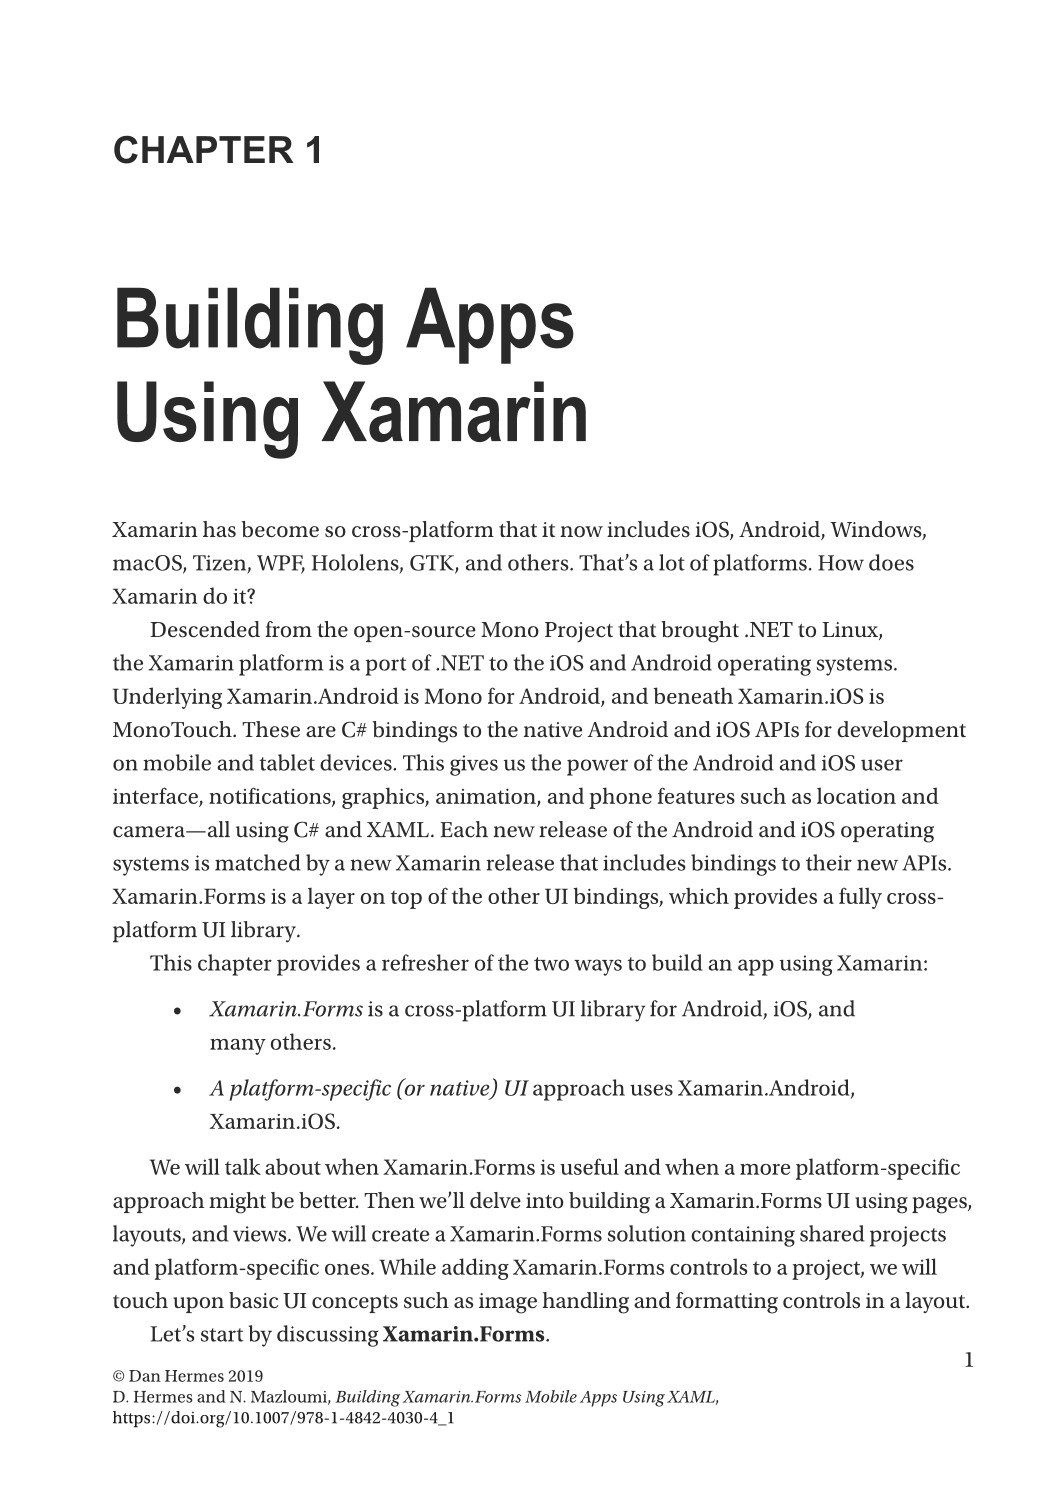 Building Xamarin.Forms Mobile Apps Using XAML: Mobile Cross-Platform XAML and Xamarin.Forms Fundamentals-preview-1